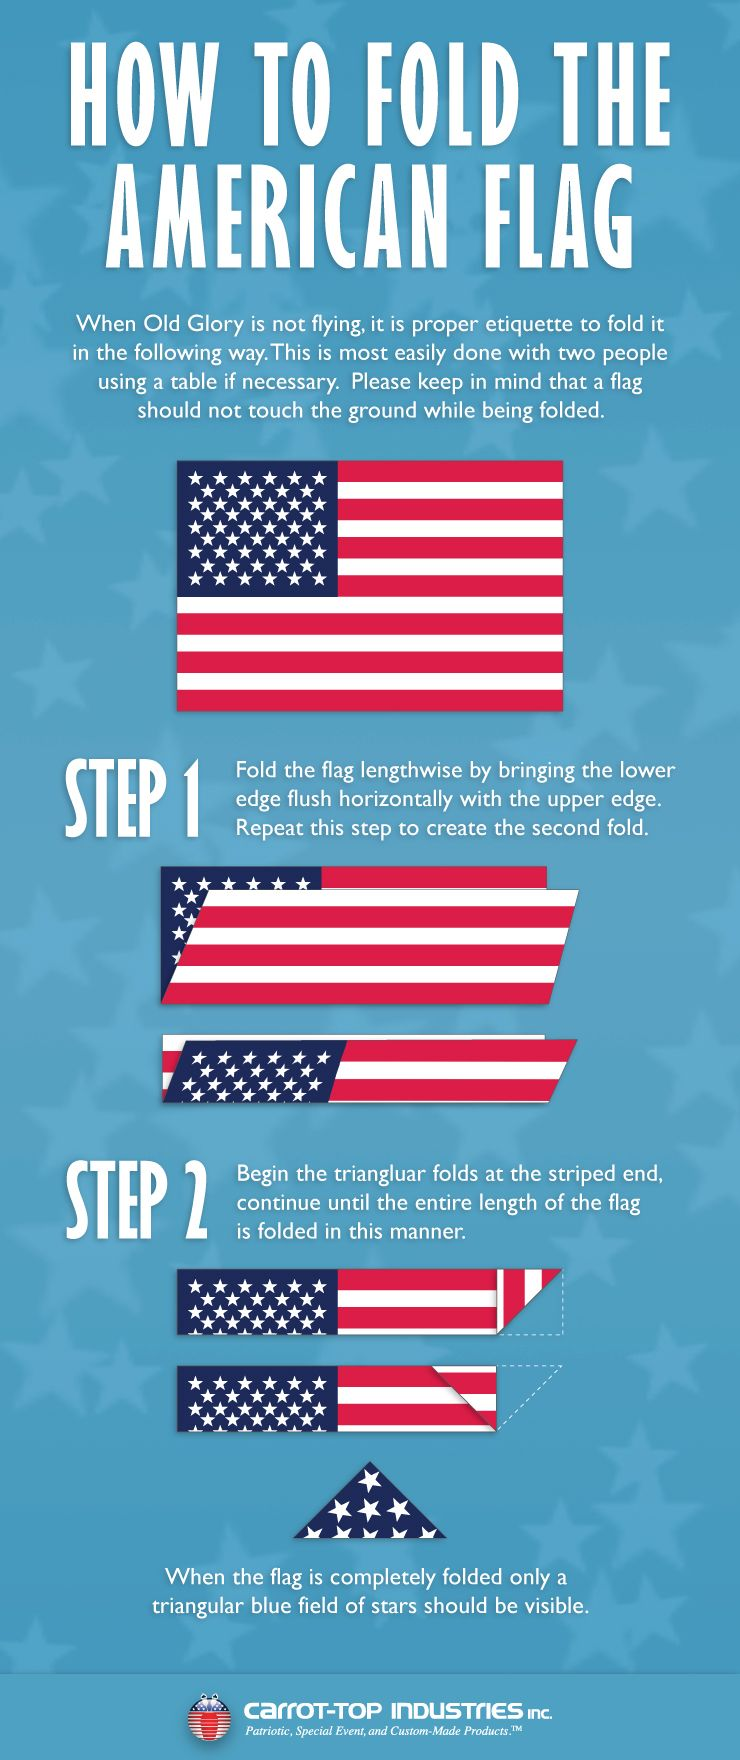 Ever Wondered How To Properly Fold The American Flag We Re Here To Help Flag Flying Guide Carrot Top Com American Flag Rules Flag Etiquette Flag Rules